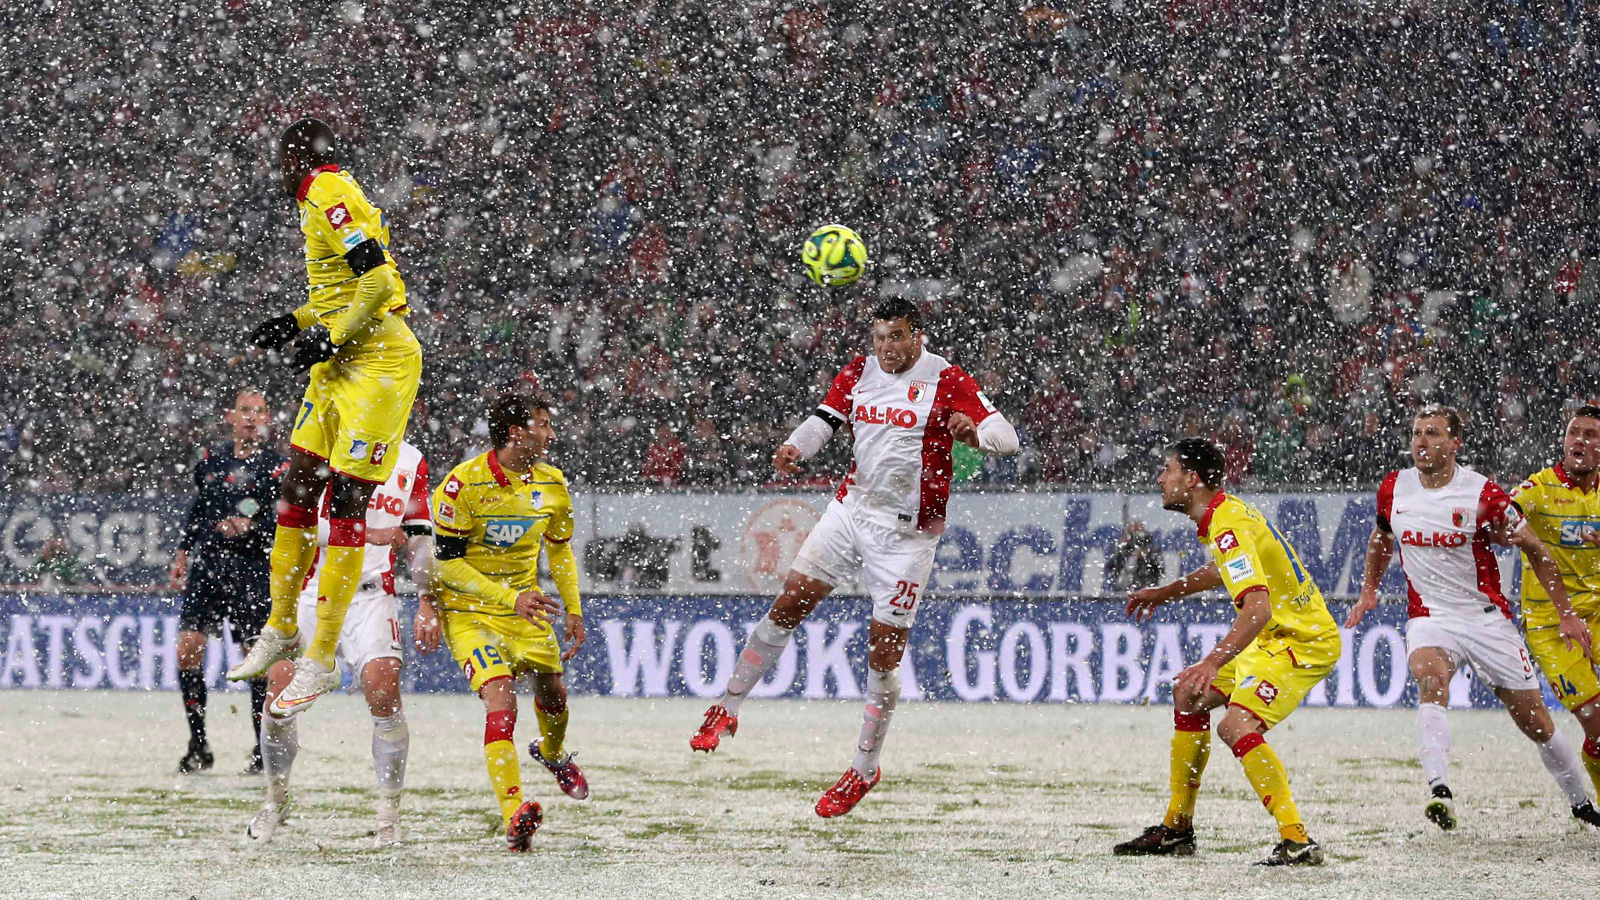 Augsburg vs. Hoffenheim in Germany, February 2015